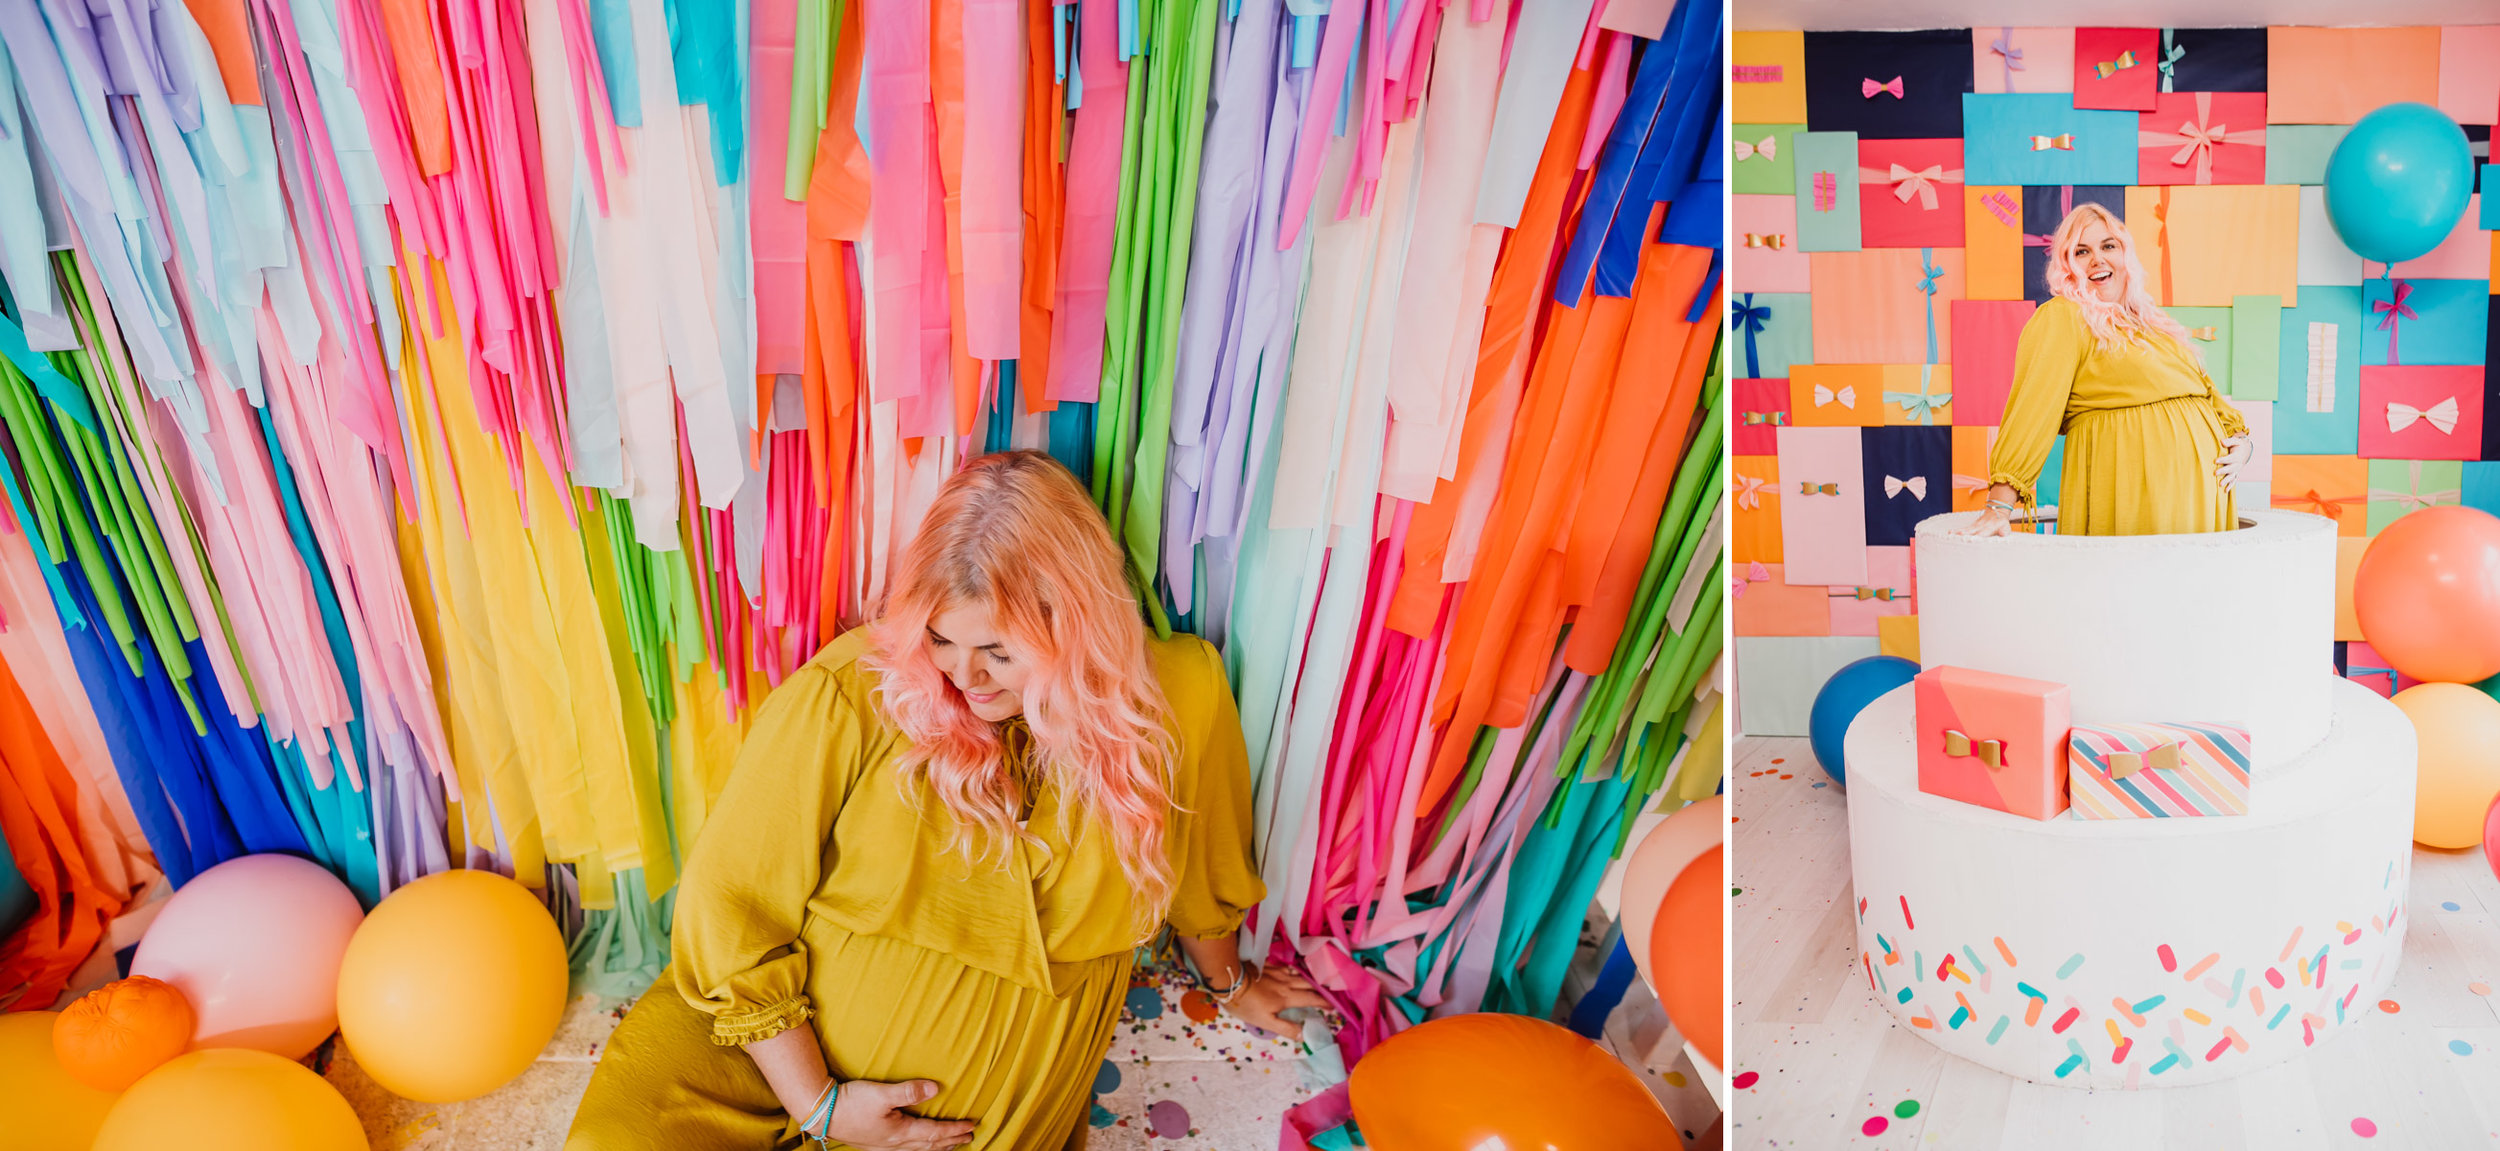 Maternity photos at The FOMO Factory by Lisa Woods